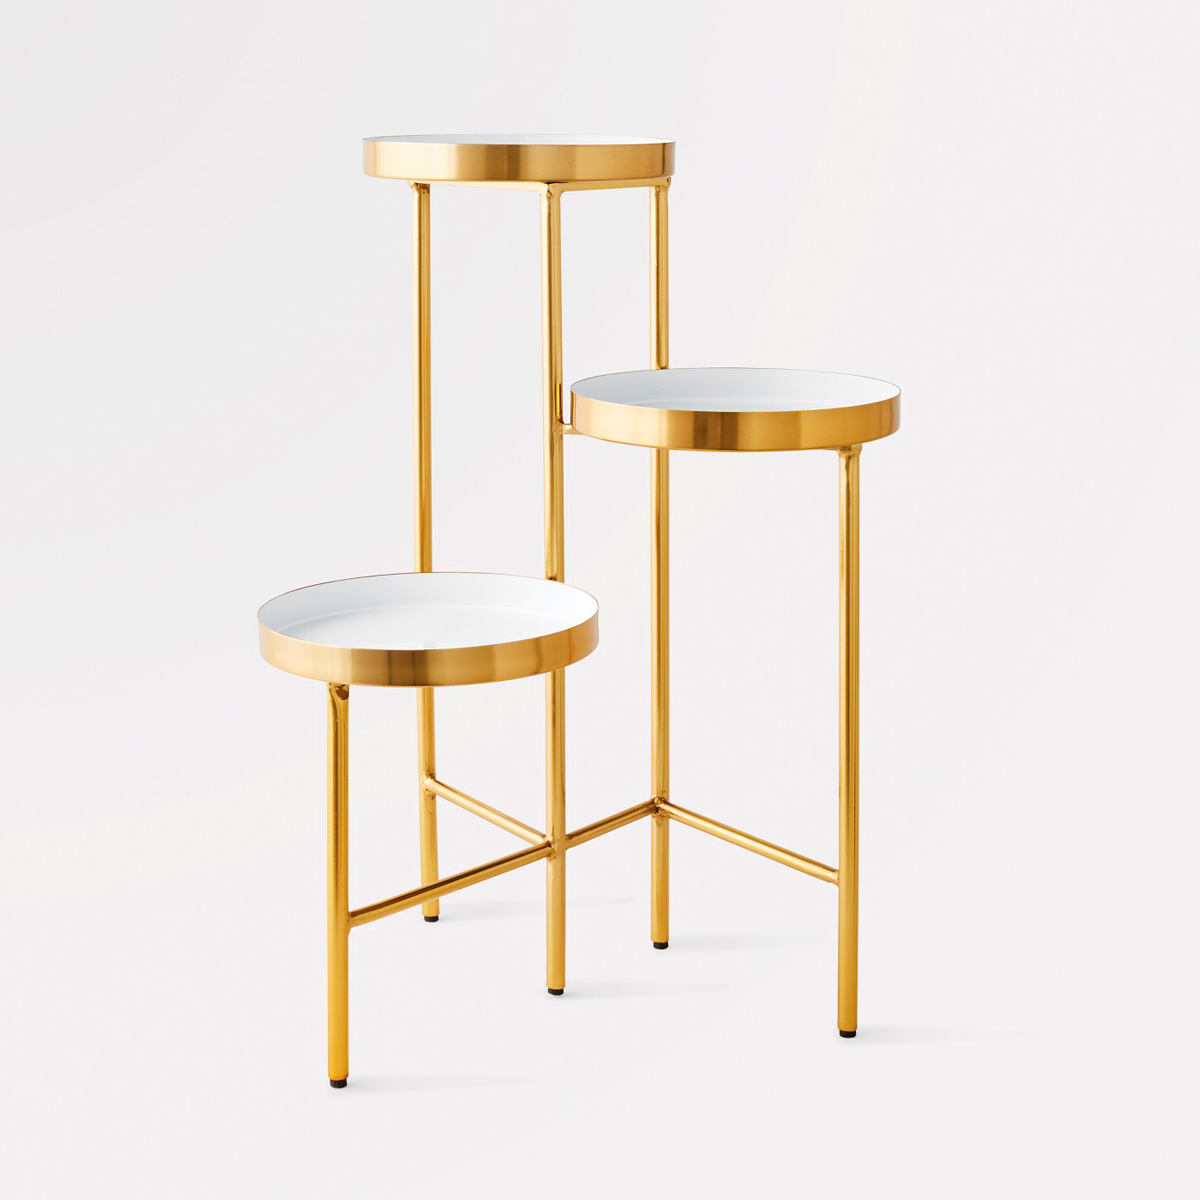 target cabinet threshold accent table outdoor and kijiji furniture round storage bench gold tables ott small with full size slim lamp changing dresser sofa coffee sets glass